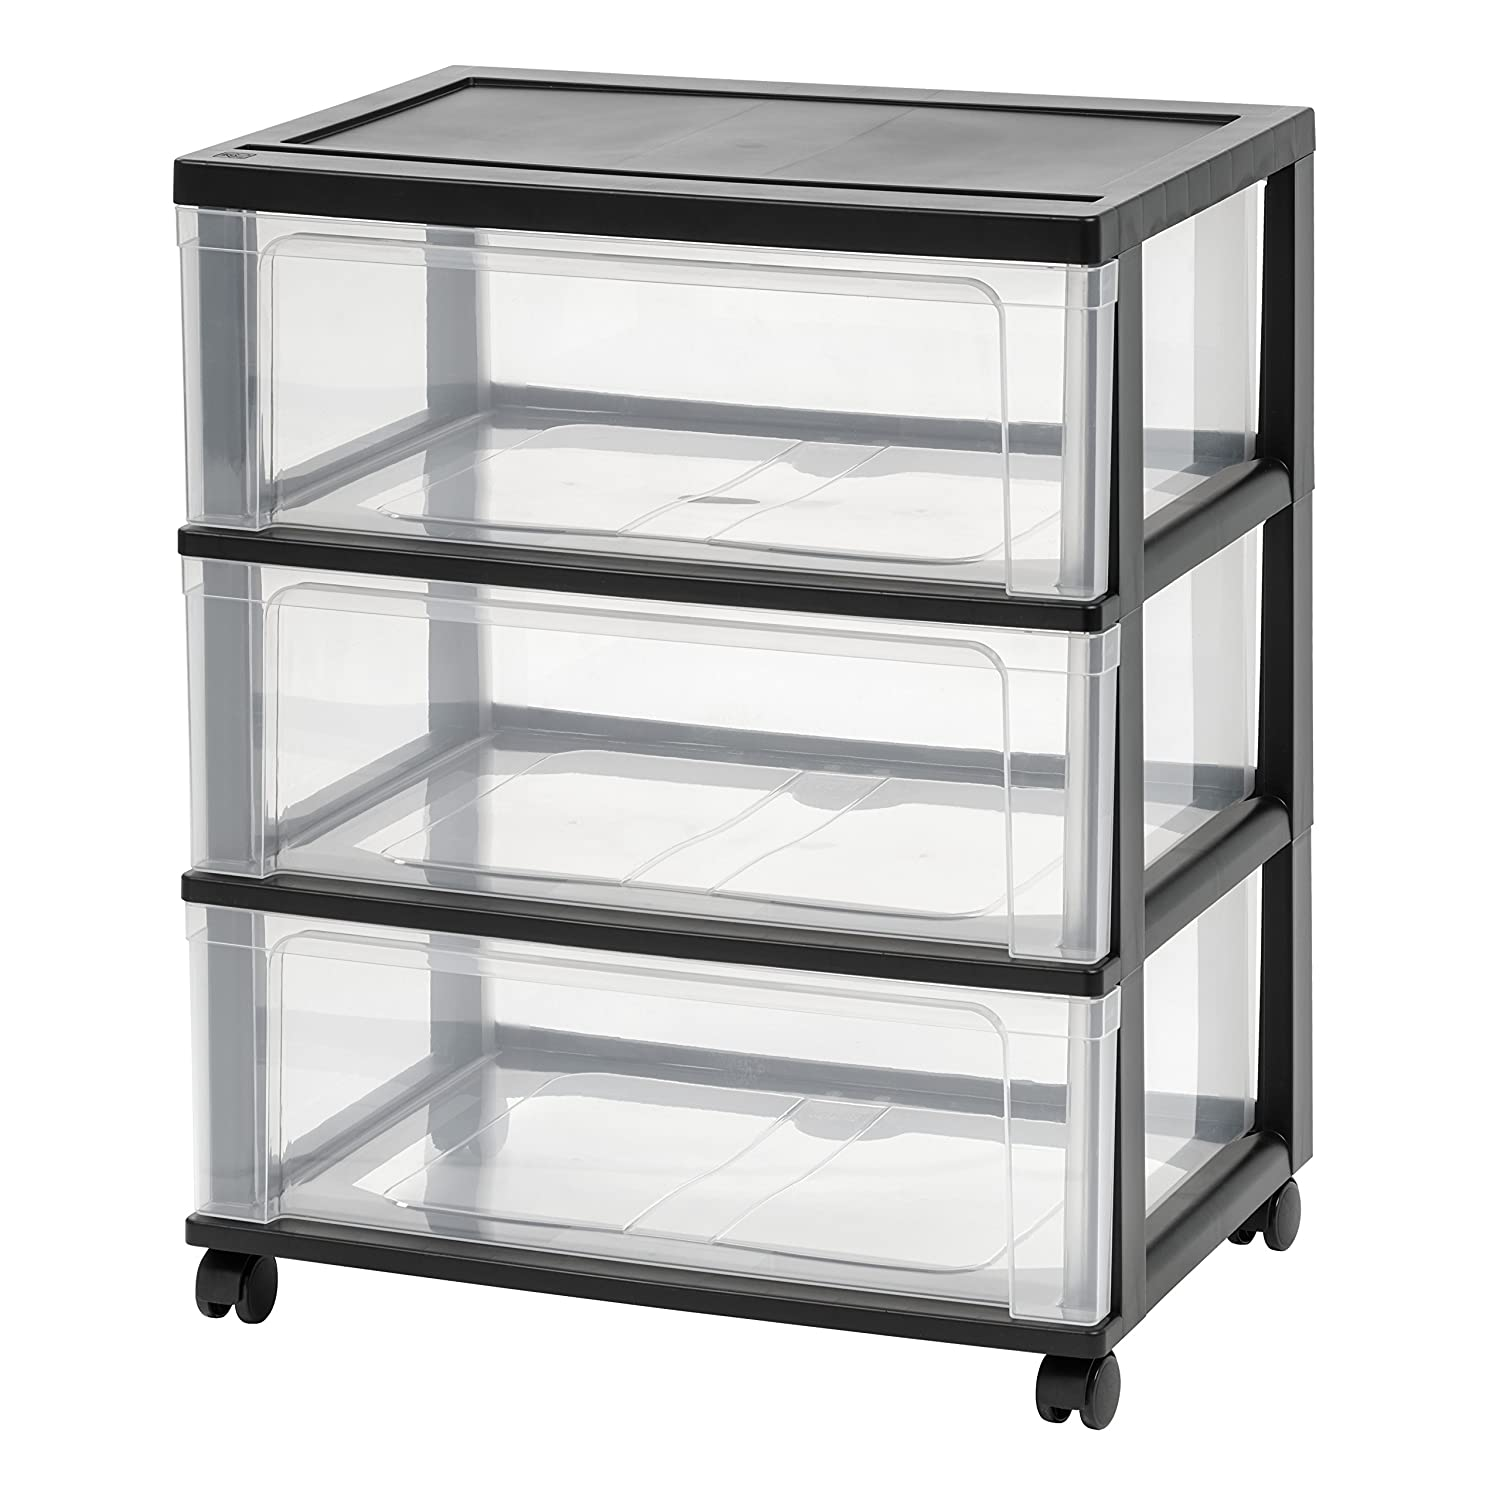 IRIS 3 Drawer Wide Chest, Black